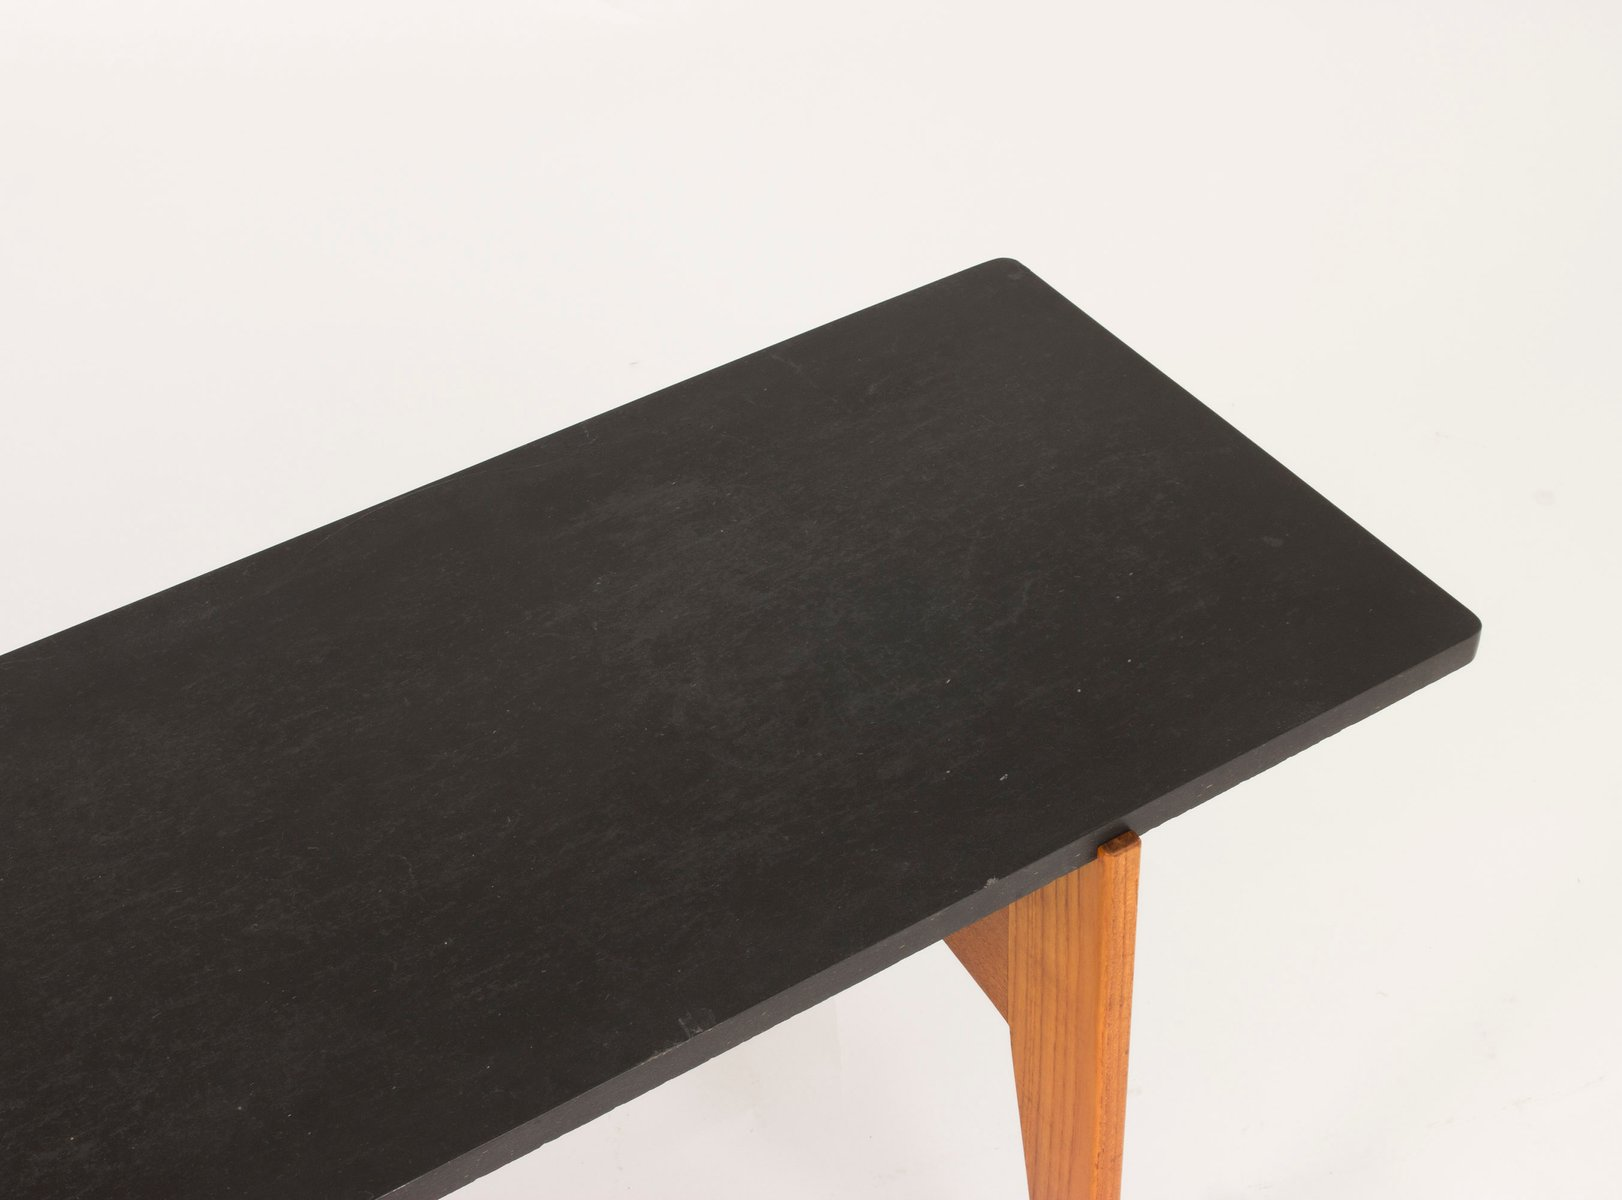 Teak and Black Marble Coffee Table by Hans Agne Jakobsson 1950s